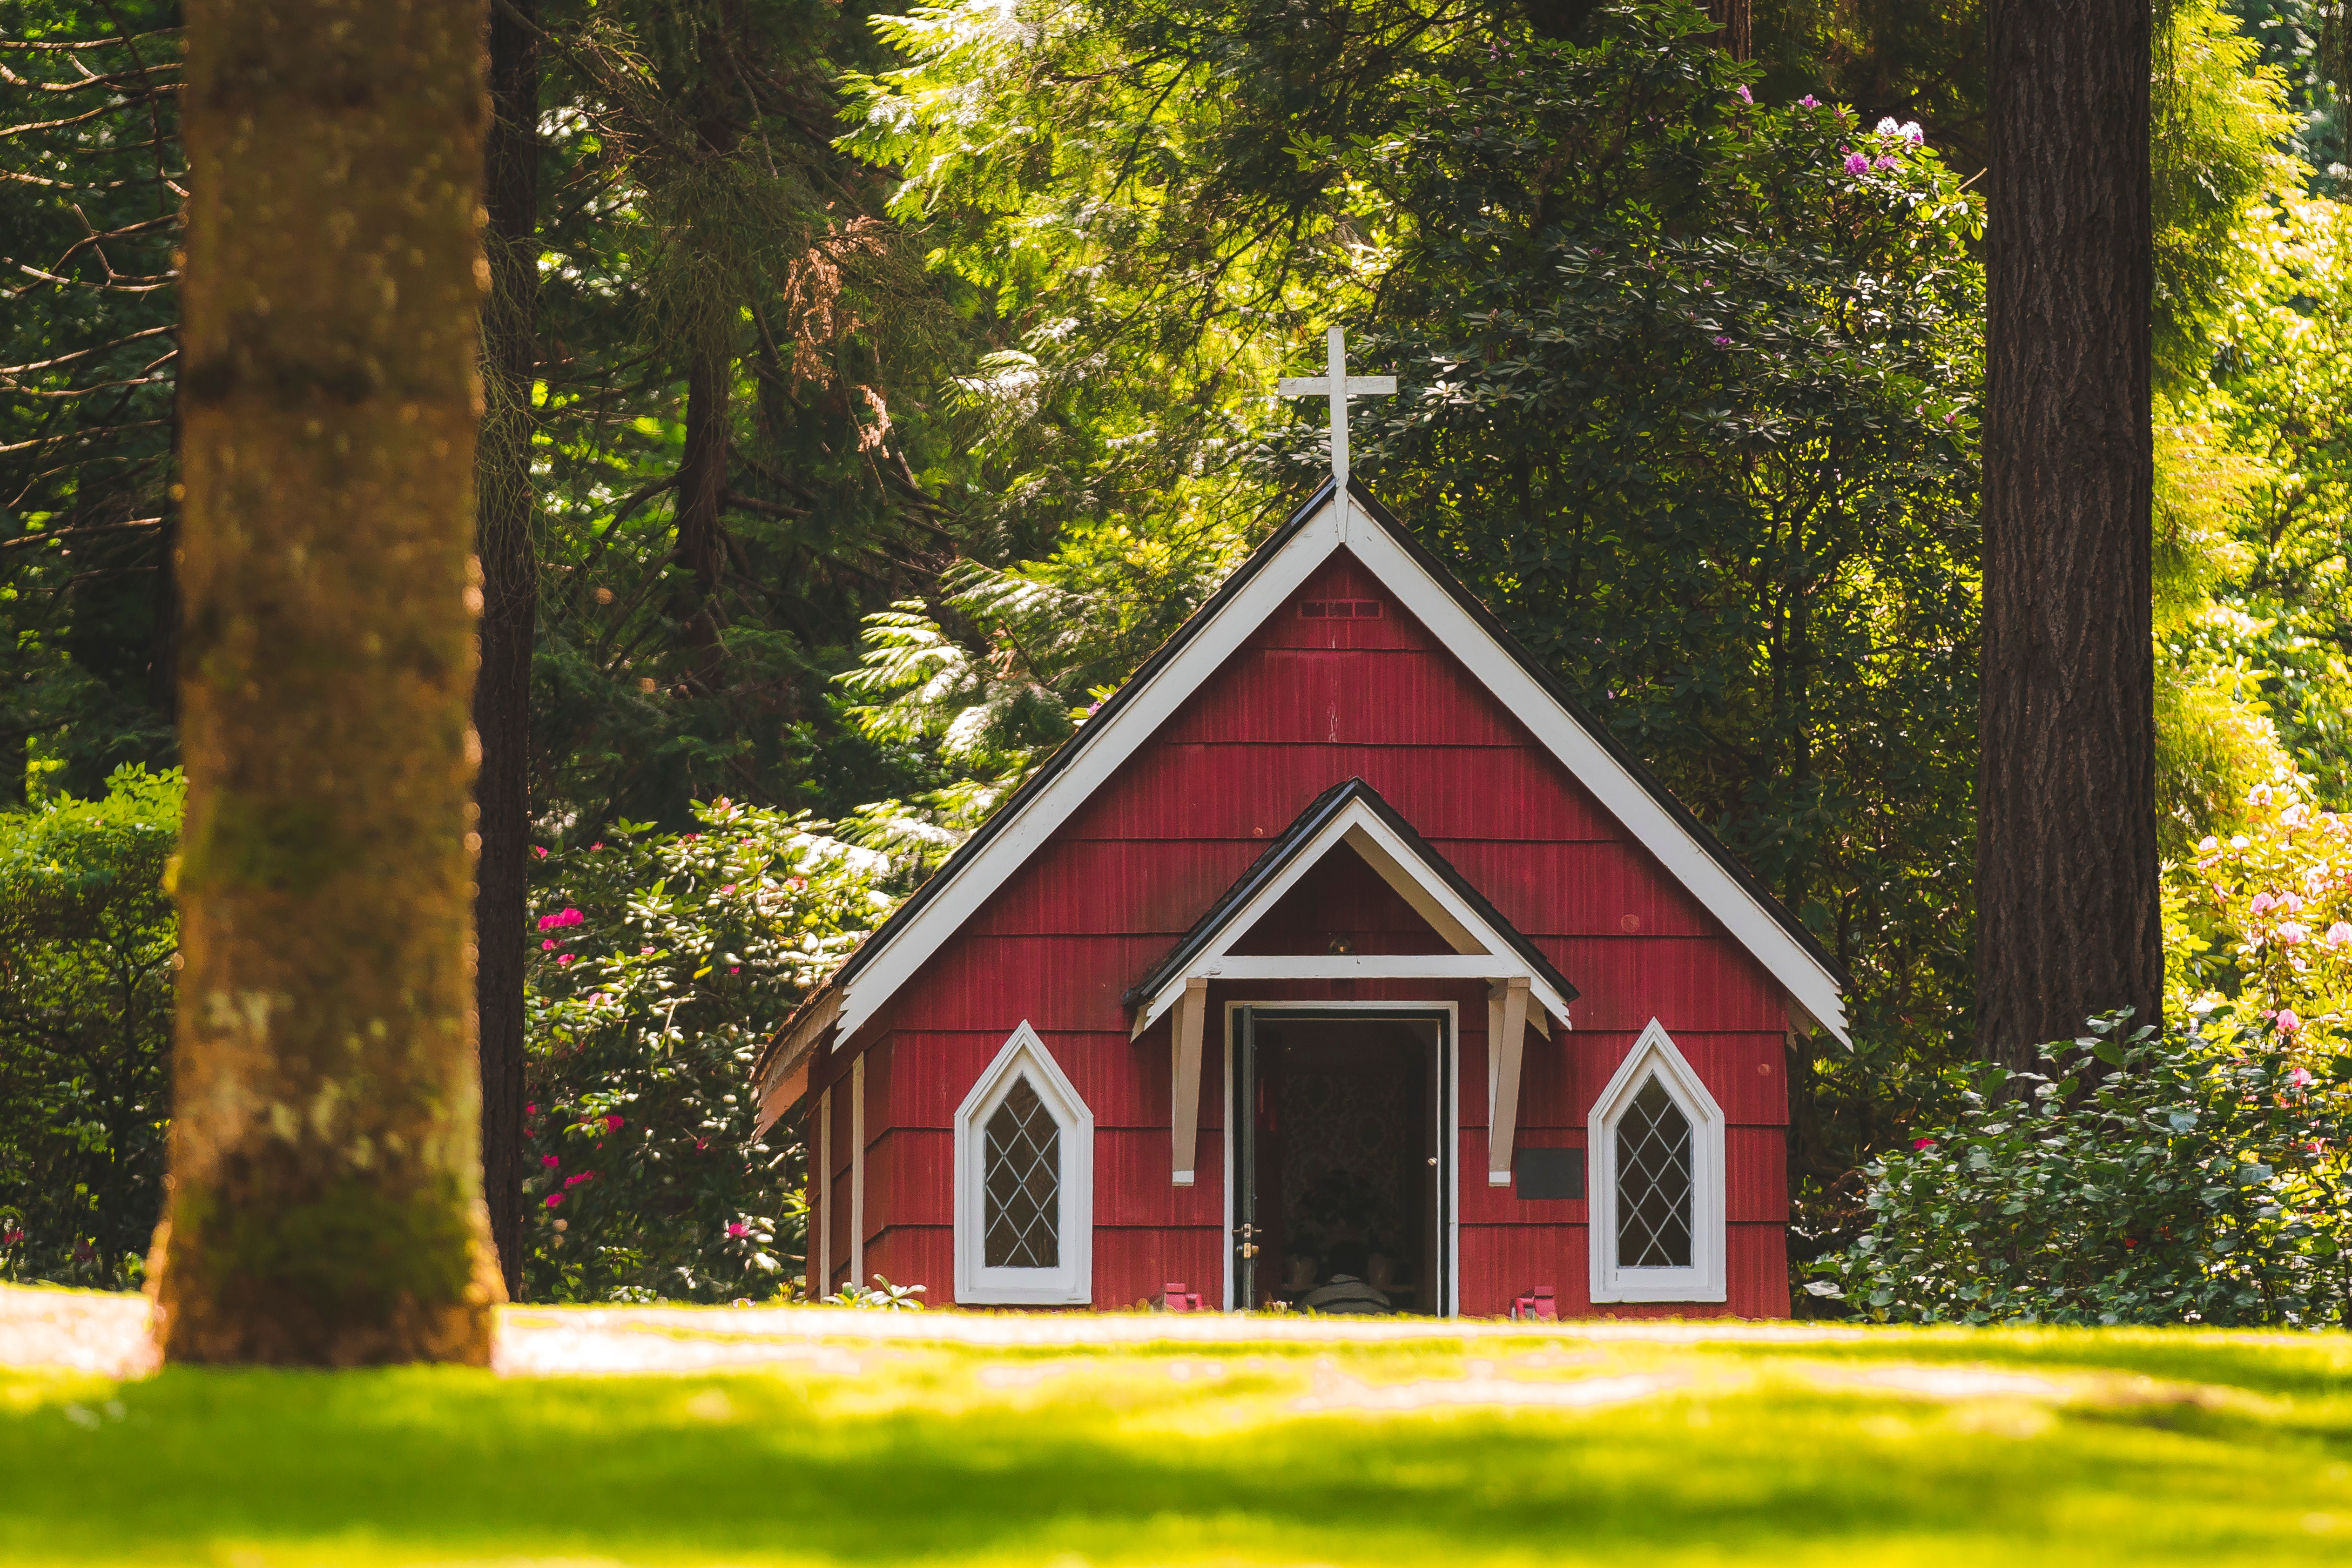 Red Chapel on Grassy Field With Trees, Architecture, Small, Season, Red, HQ Photo